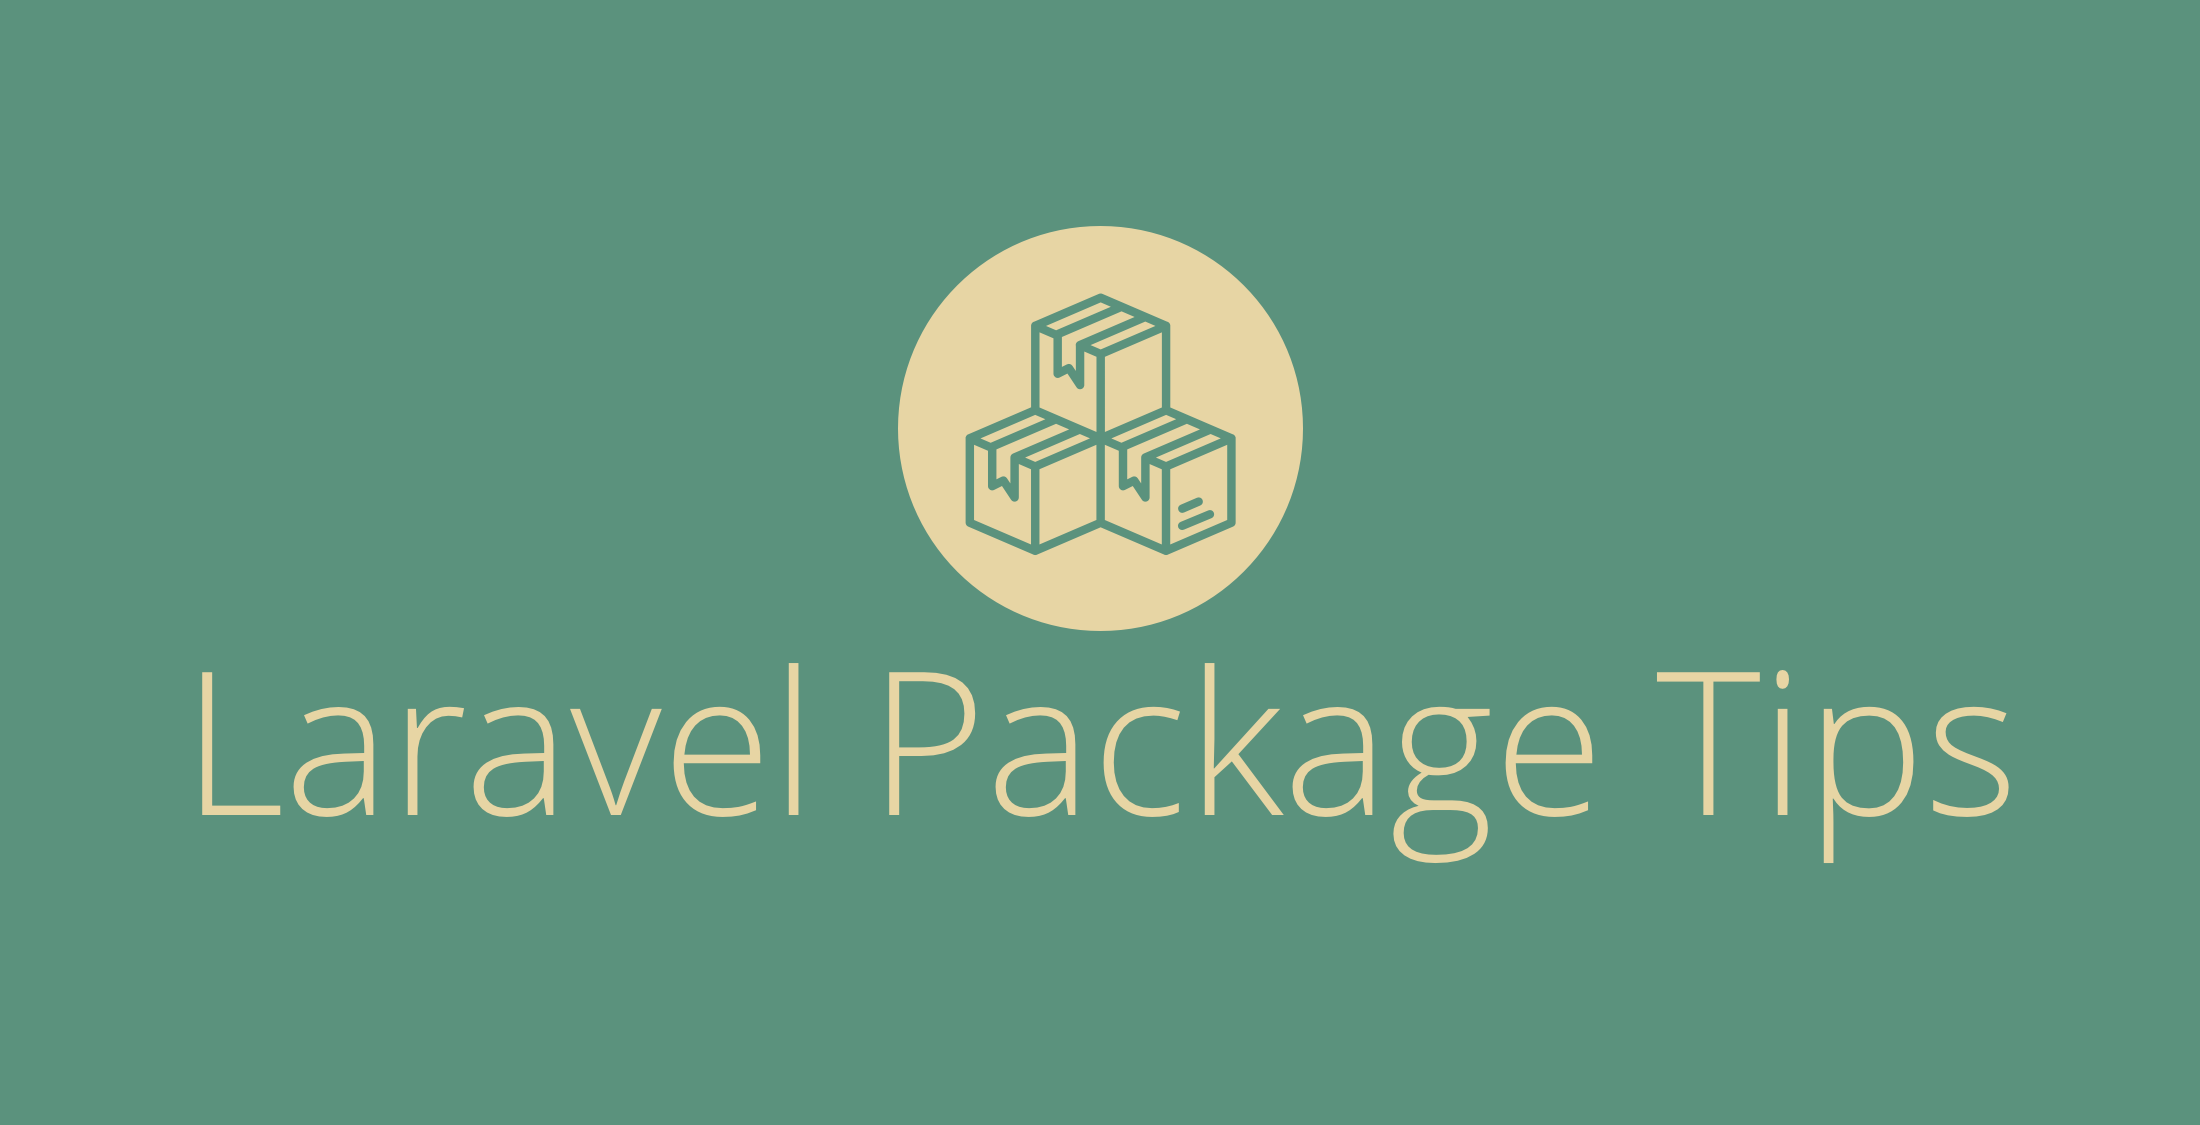 laravel-package-tips.png